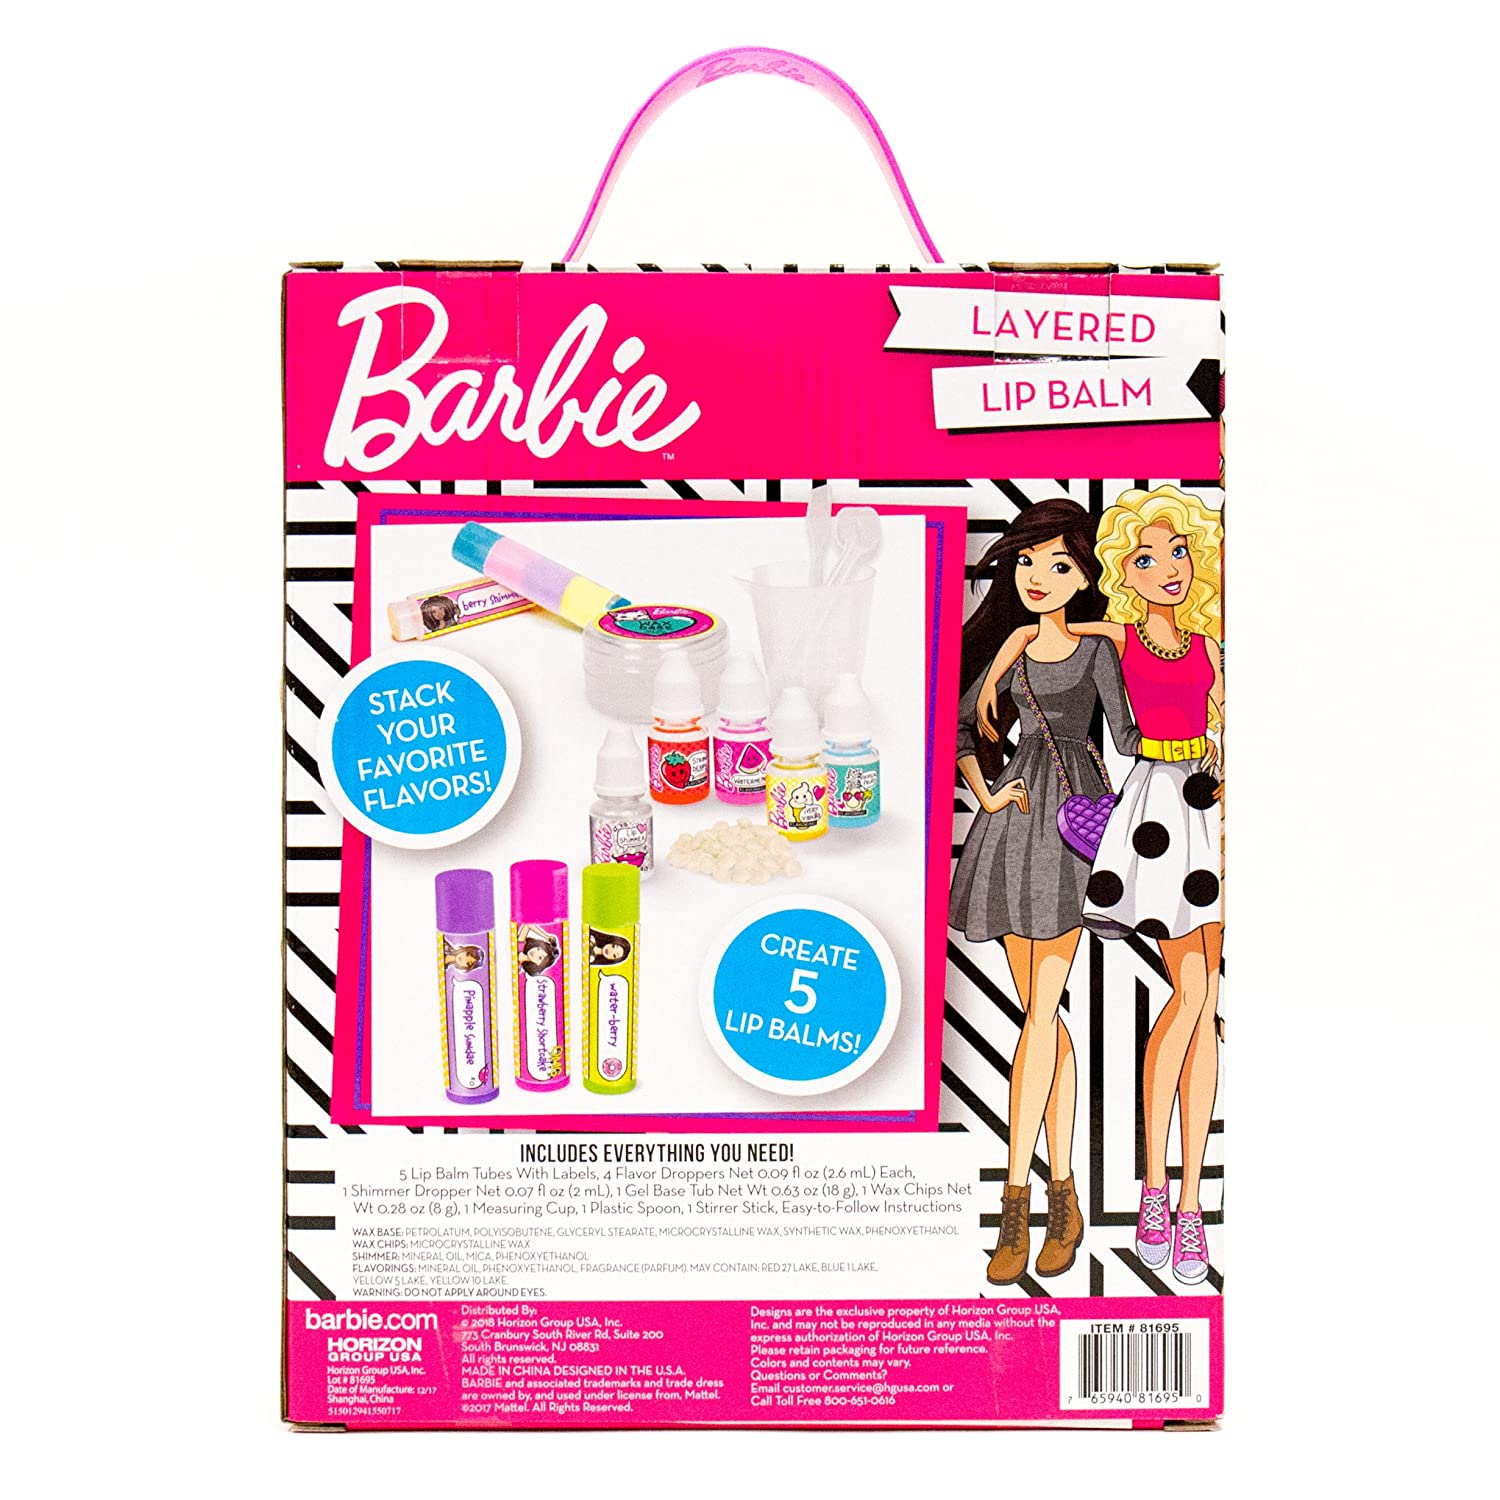 Mix and Match Flavors and Colors Barbie Make Your Own Layered Lip Balm Kit Makes 5 Custom Lip Balms